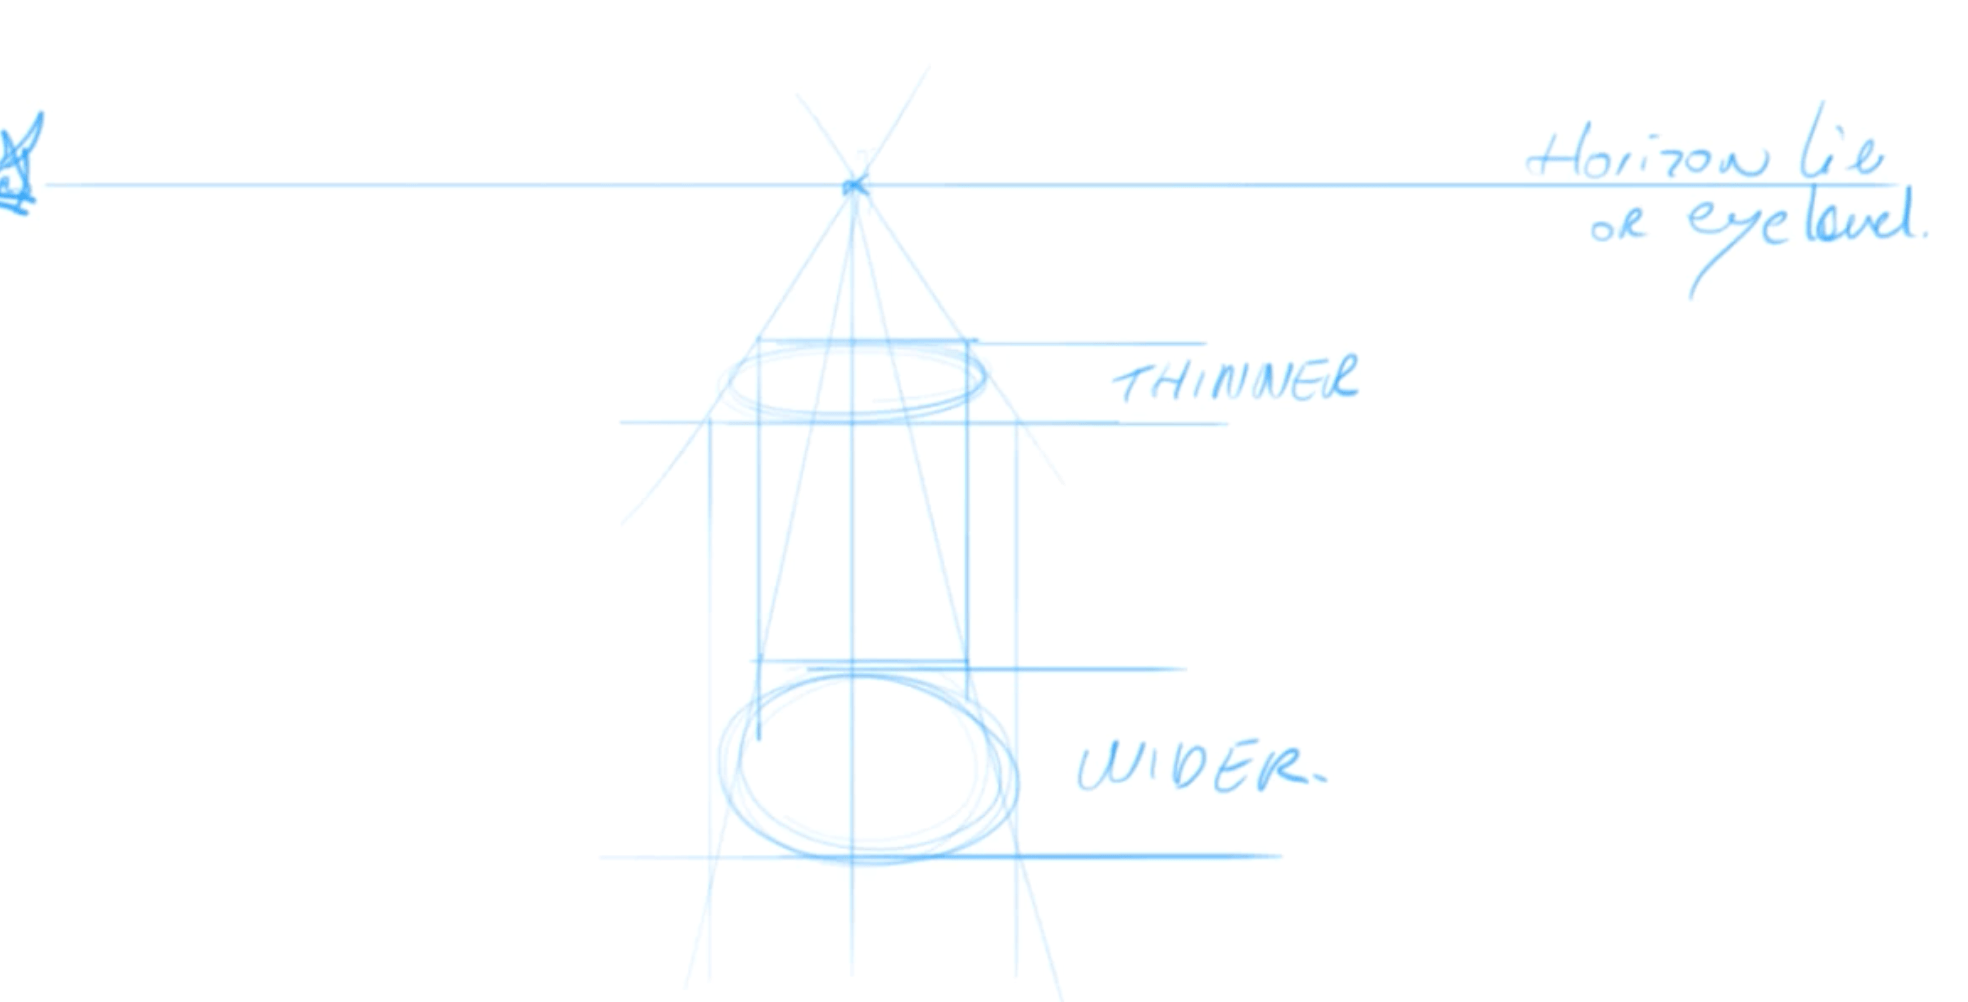 How to draw basic 3d volumes - cone - cube - cylinder - the design sketchbook - h